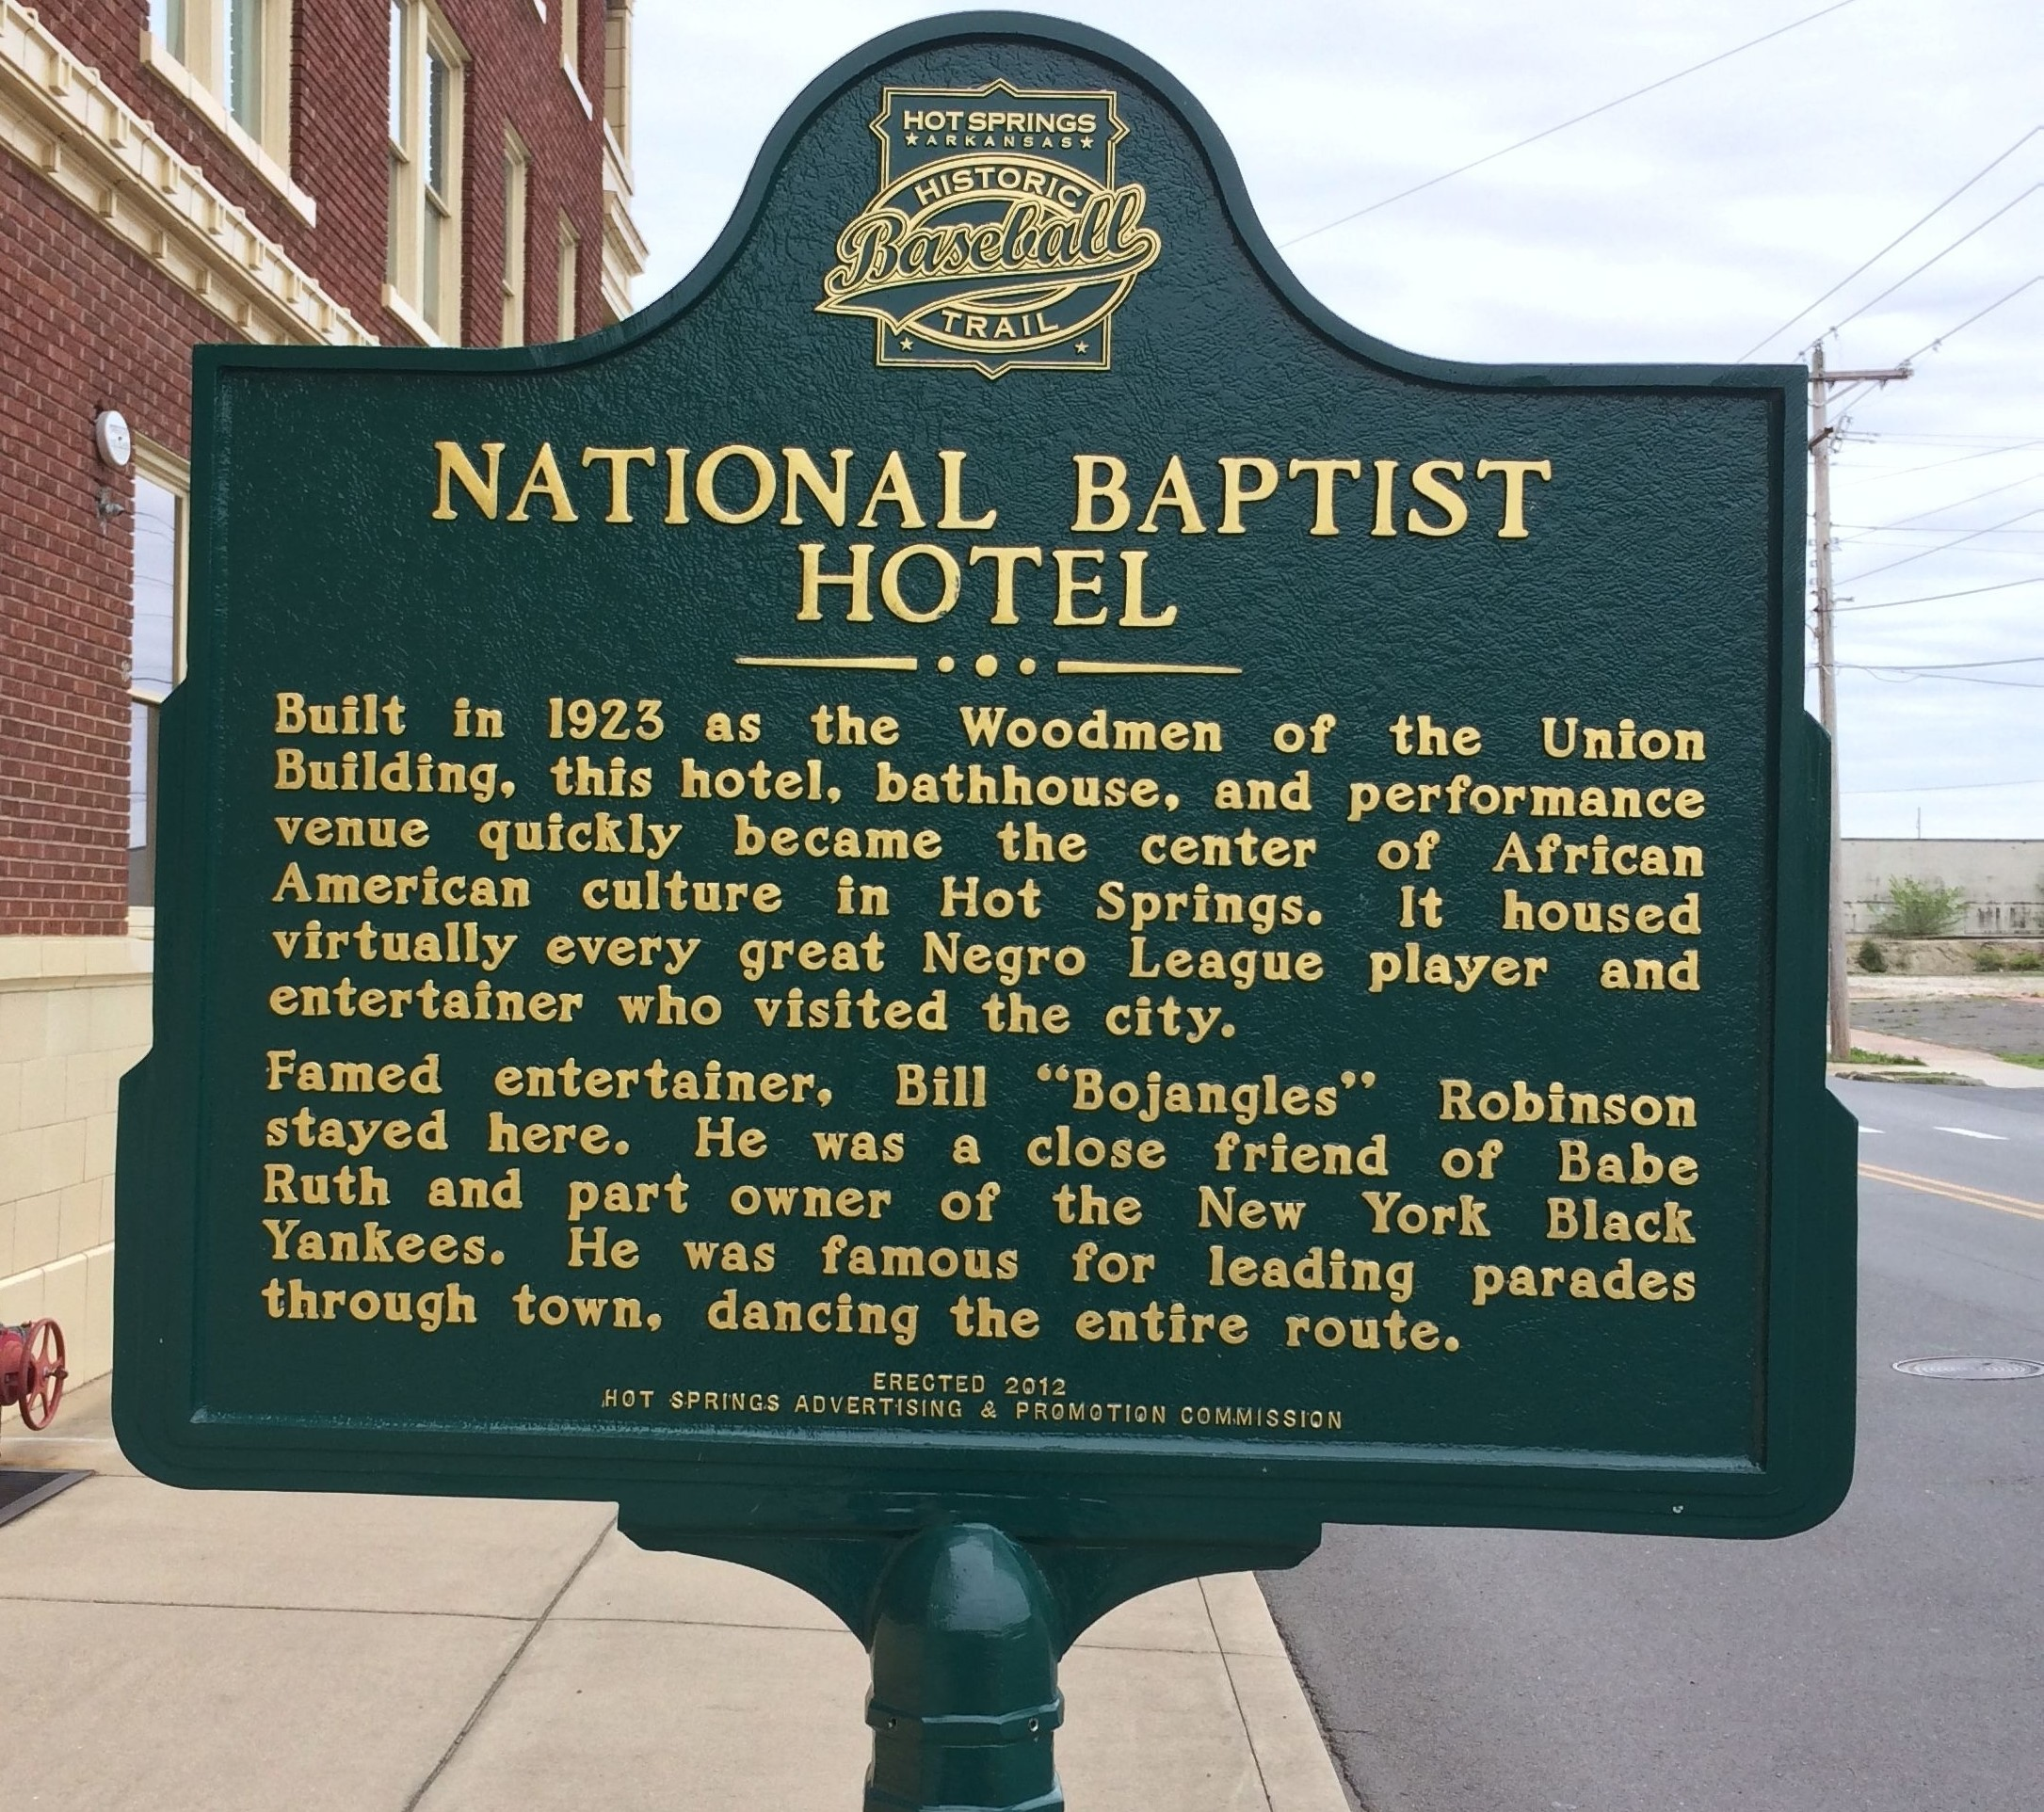 Built in 1923, the National Baptist Hotel was quickly established as the center of African American culture in the town and it became known as the place that Negro League players or black entertainers would stay when they were in town.